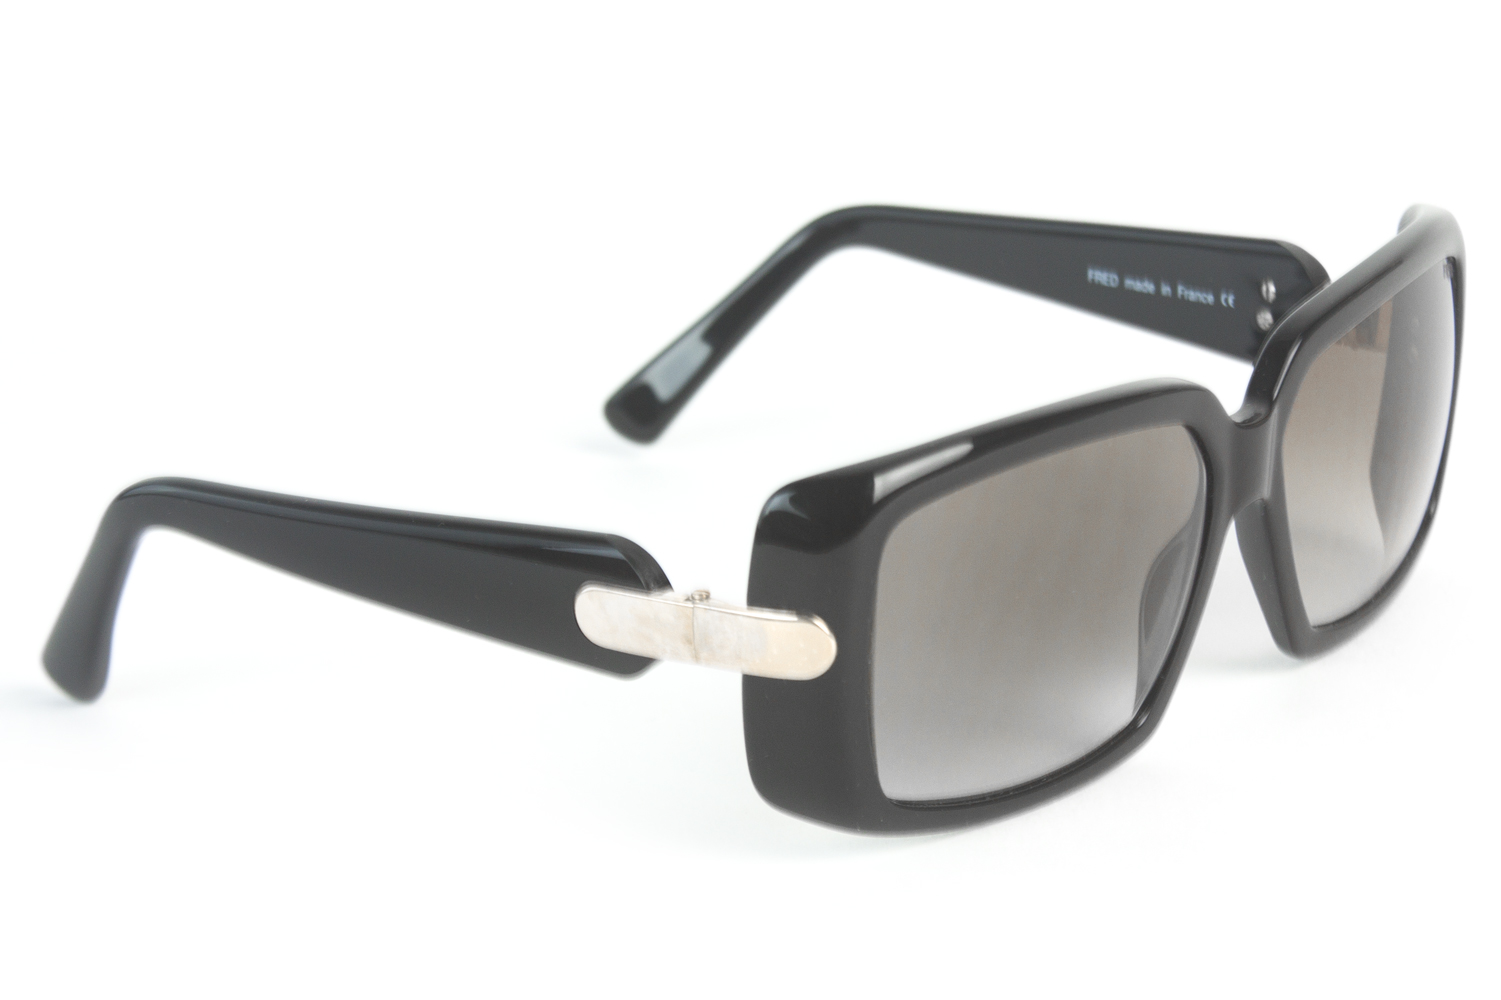 Fred-Lunettes-Marie-Galante-C2-Sunglasses-55mm-NEW thumbnail 4